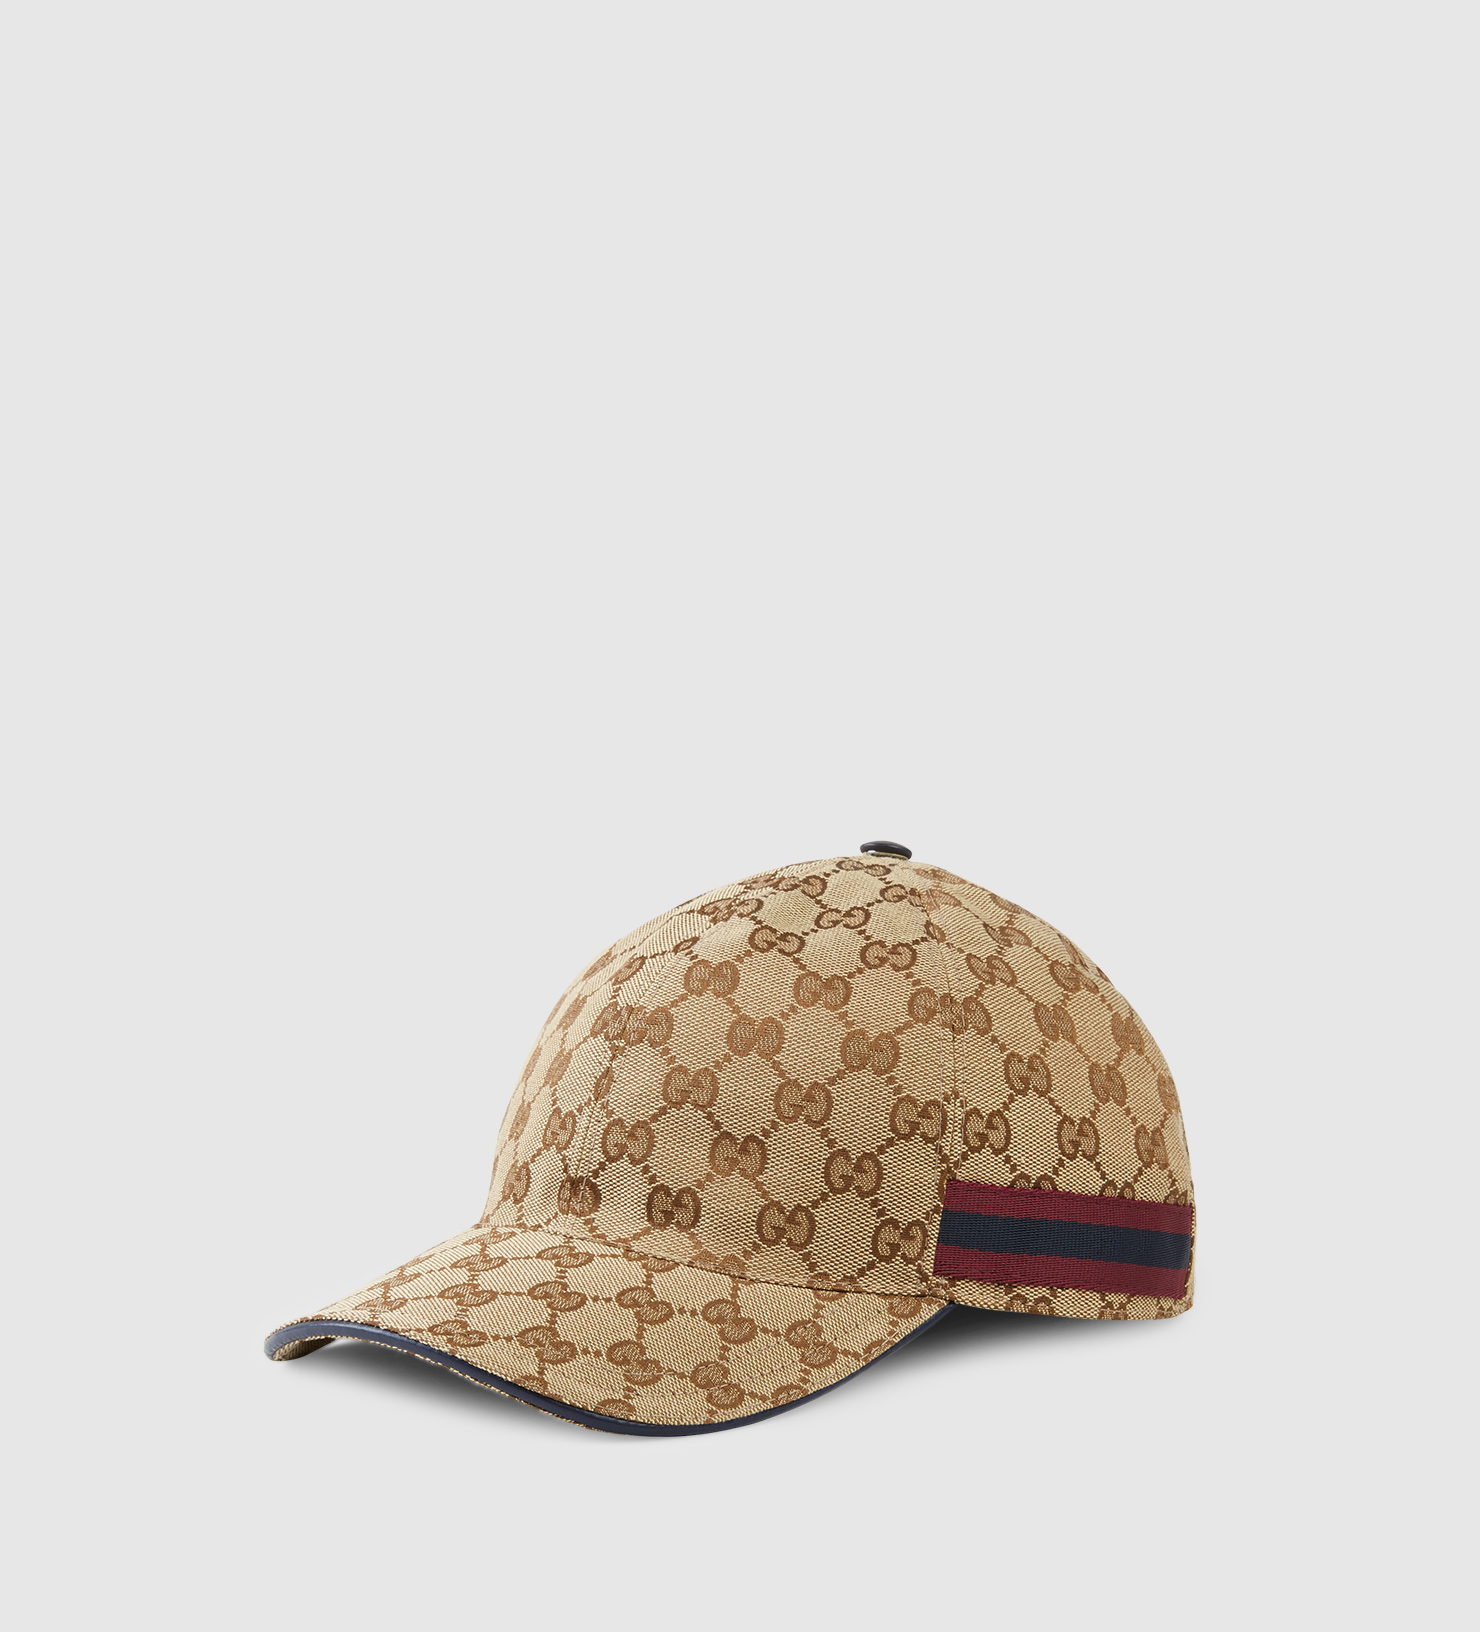 ... Gucci Original Gg Baseball Hat With Web Detail in Natural fo half off  fcf6a a638c ... 109c8576d871